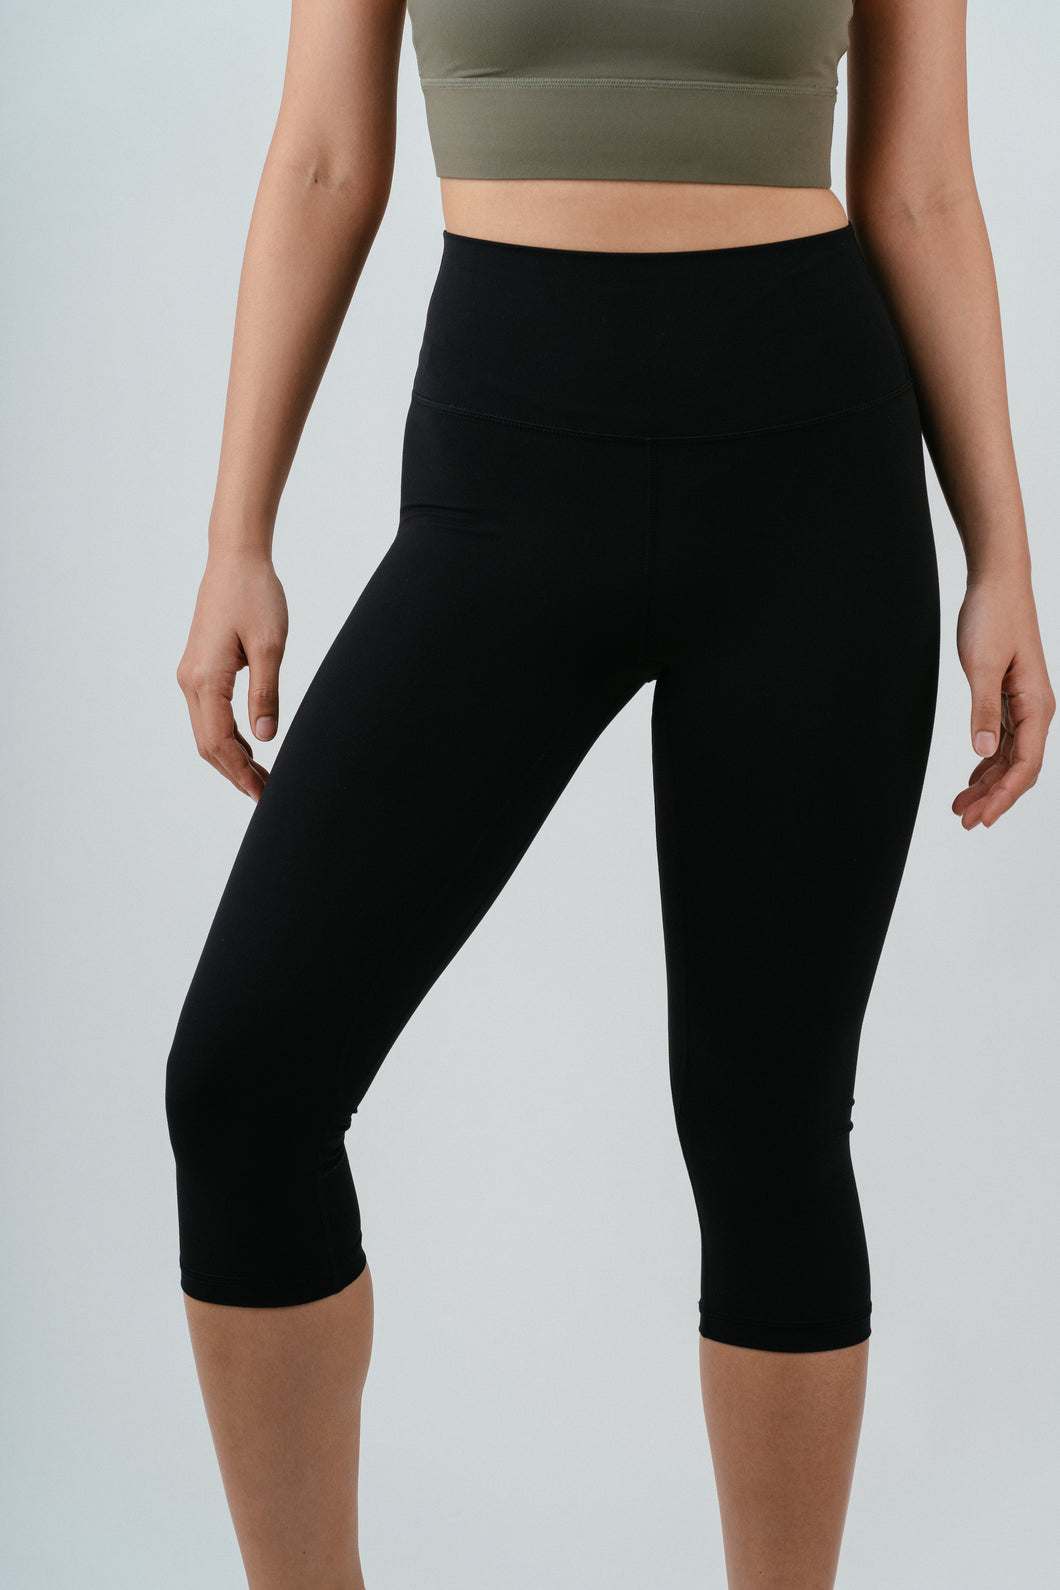 Limitless Crop Tights (Onyx)